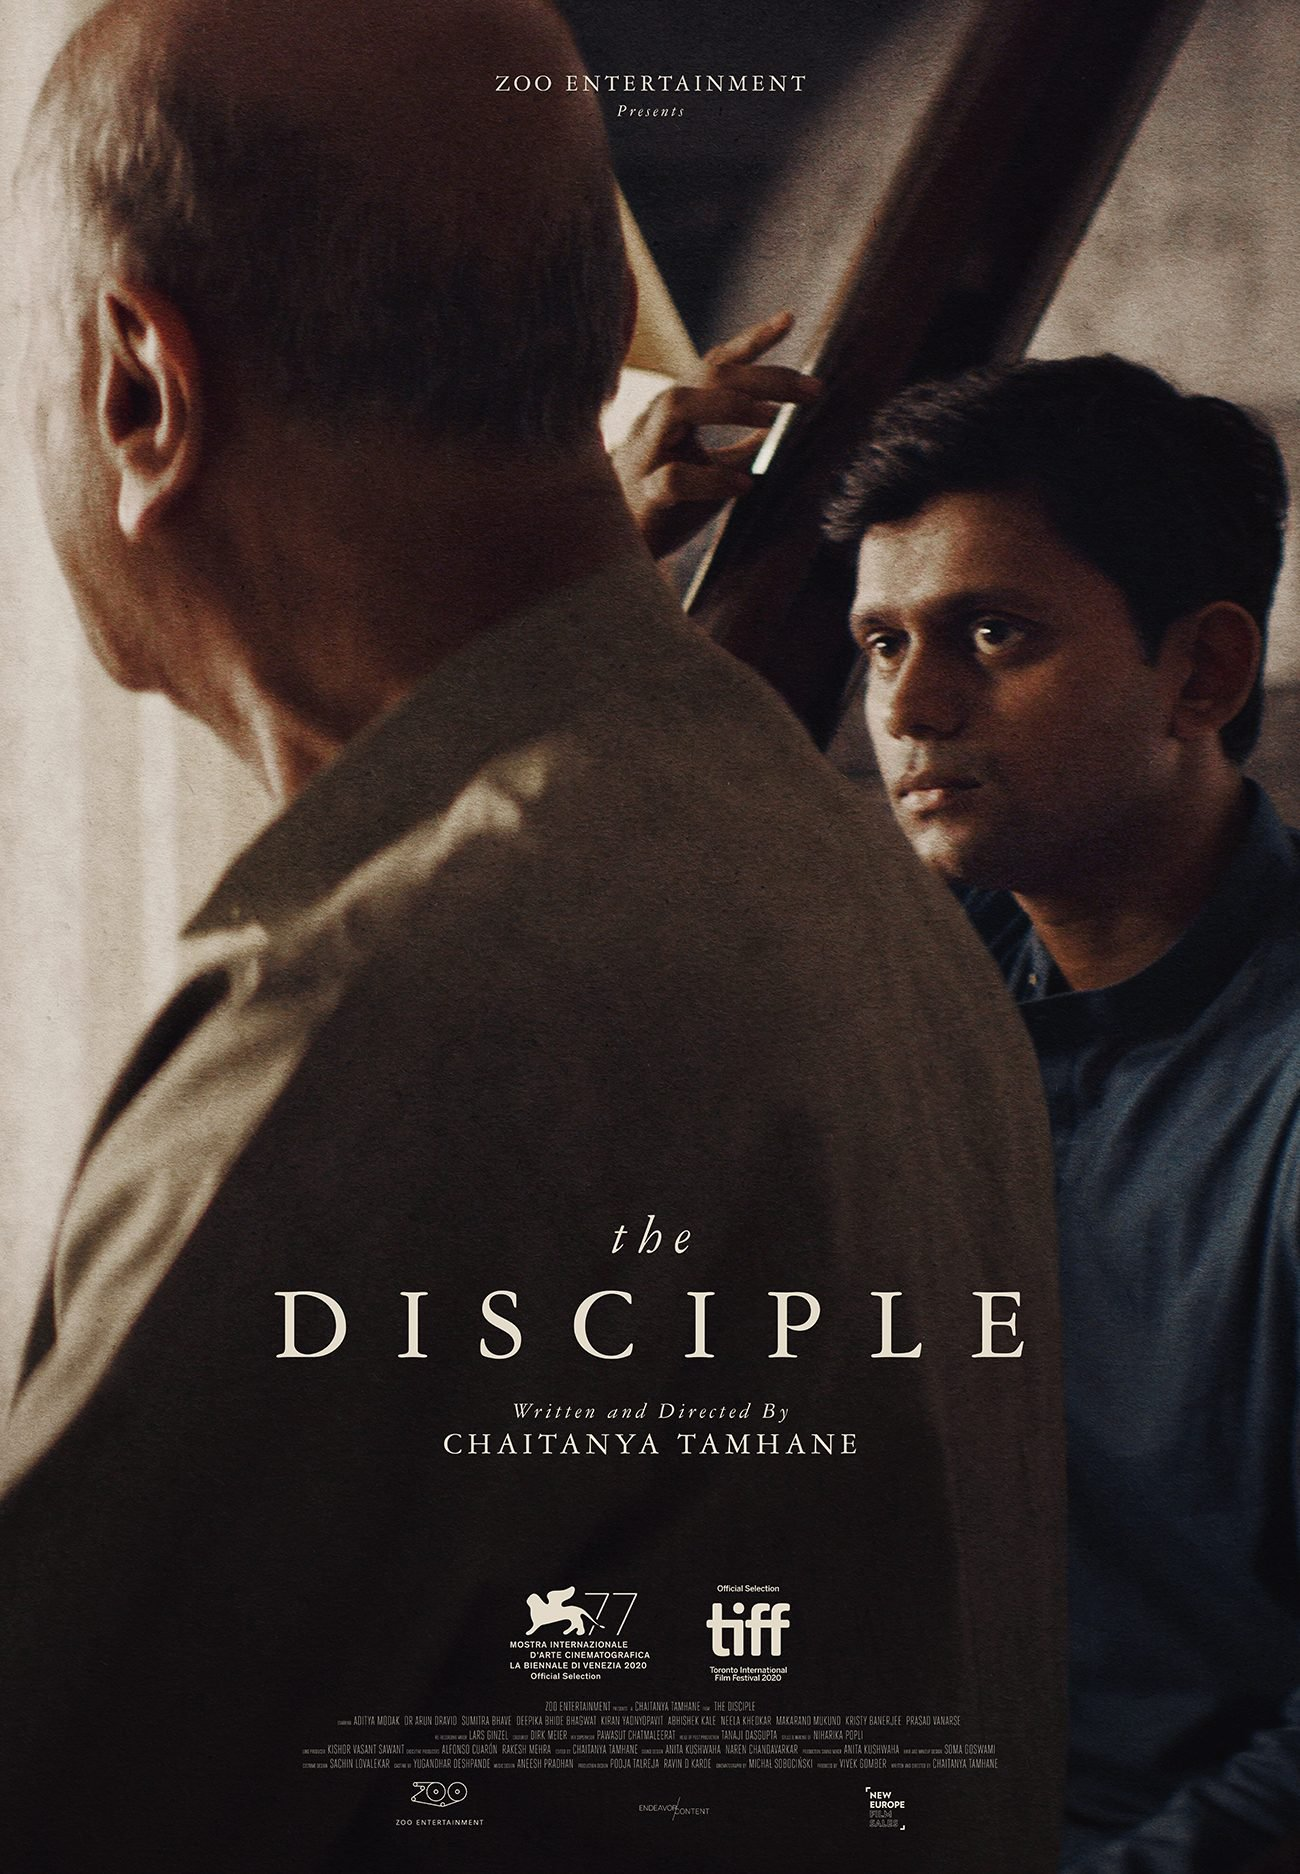 DOWNLOAD: The Disciple (2020) – Bollywood Movie